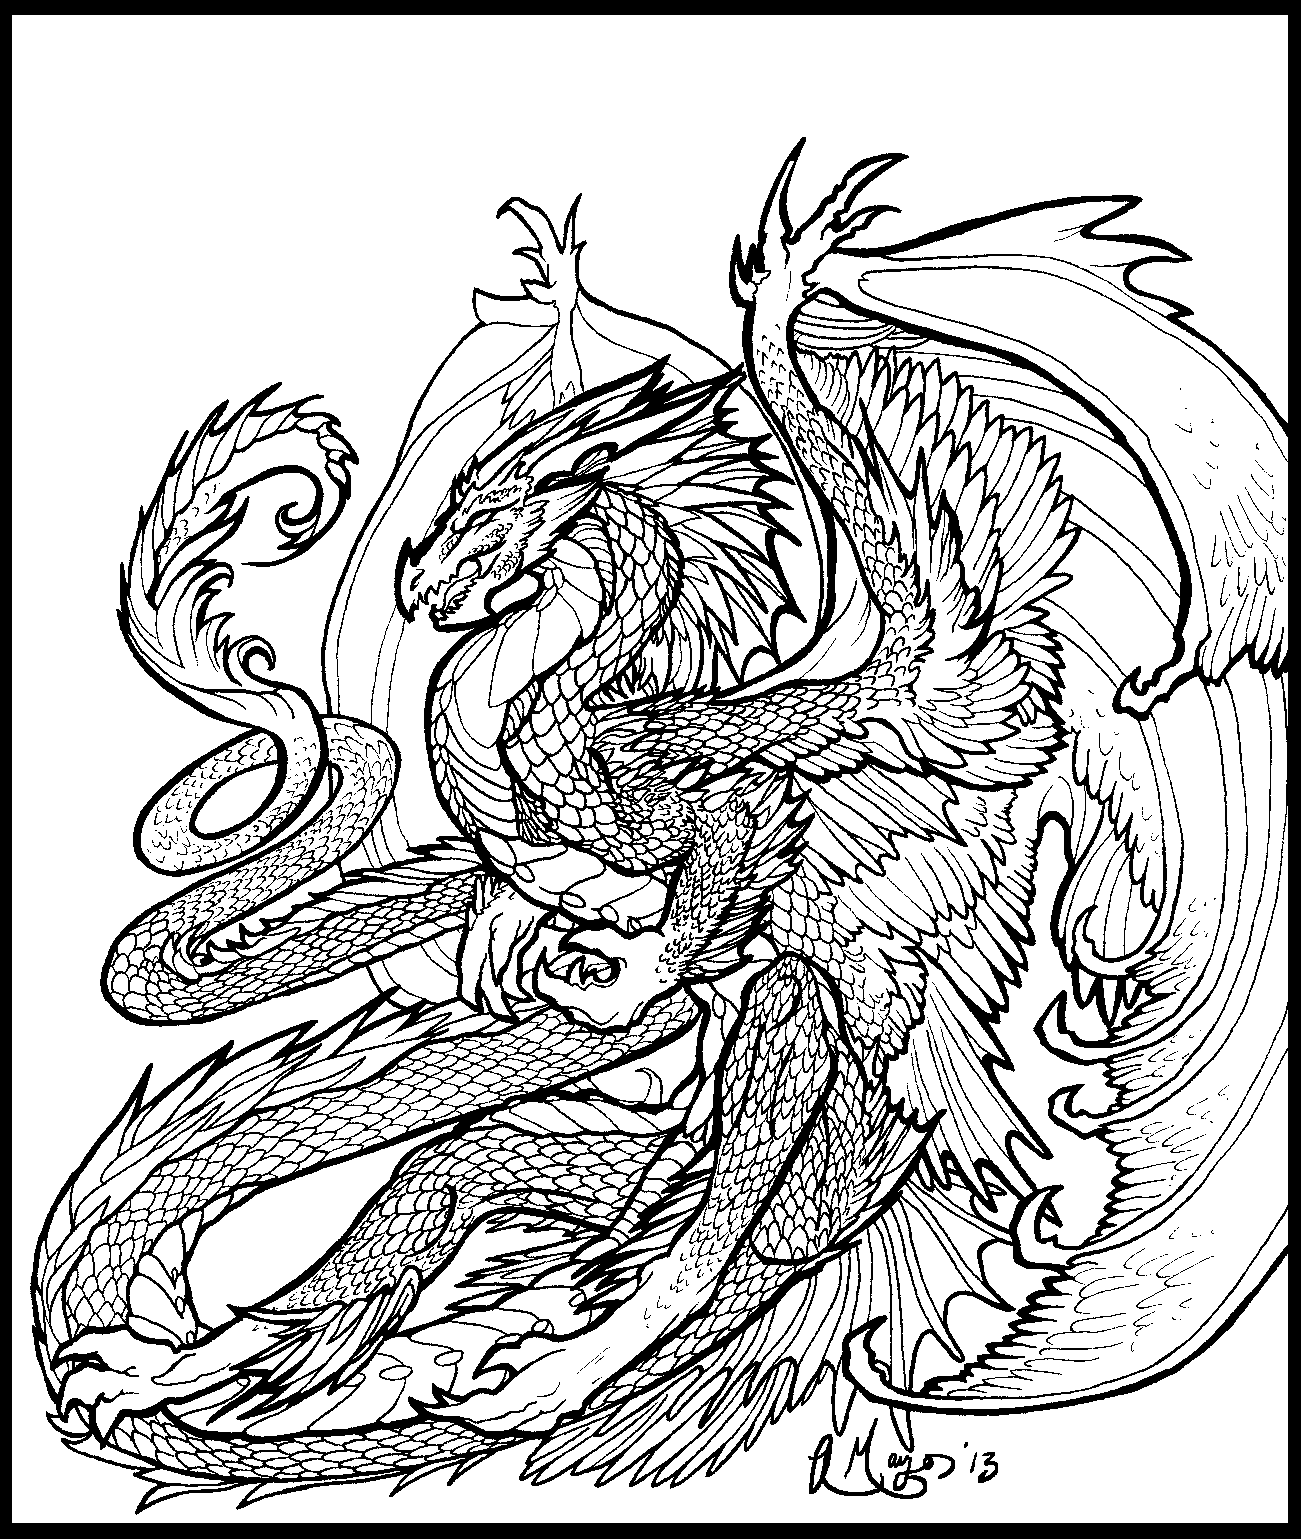 Dragon Dance 01 lineart by rachaelm5.deviantart.com on @deviantART ...